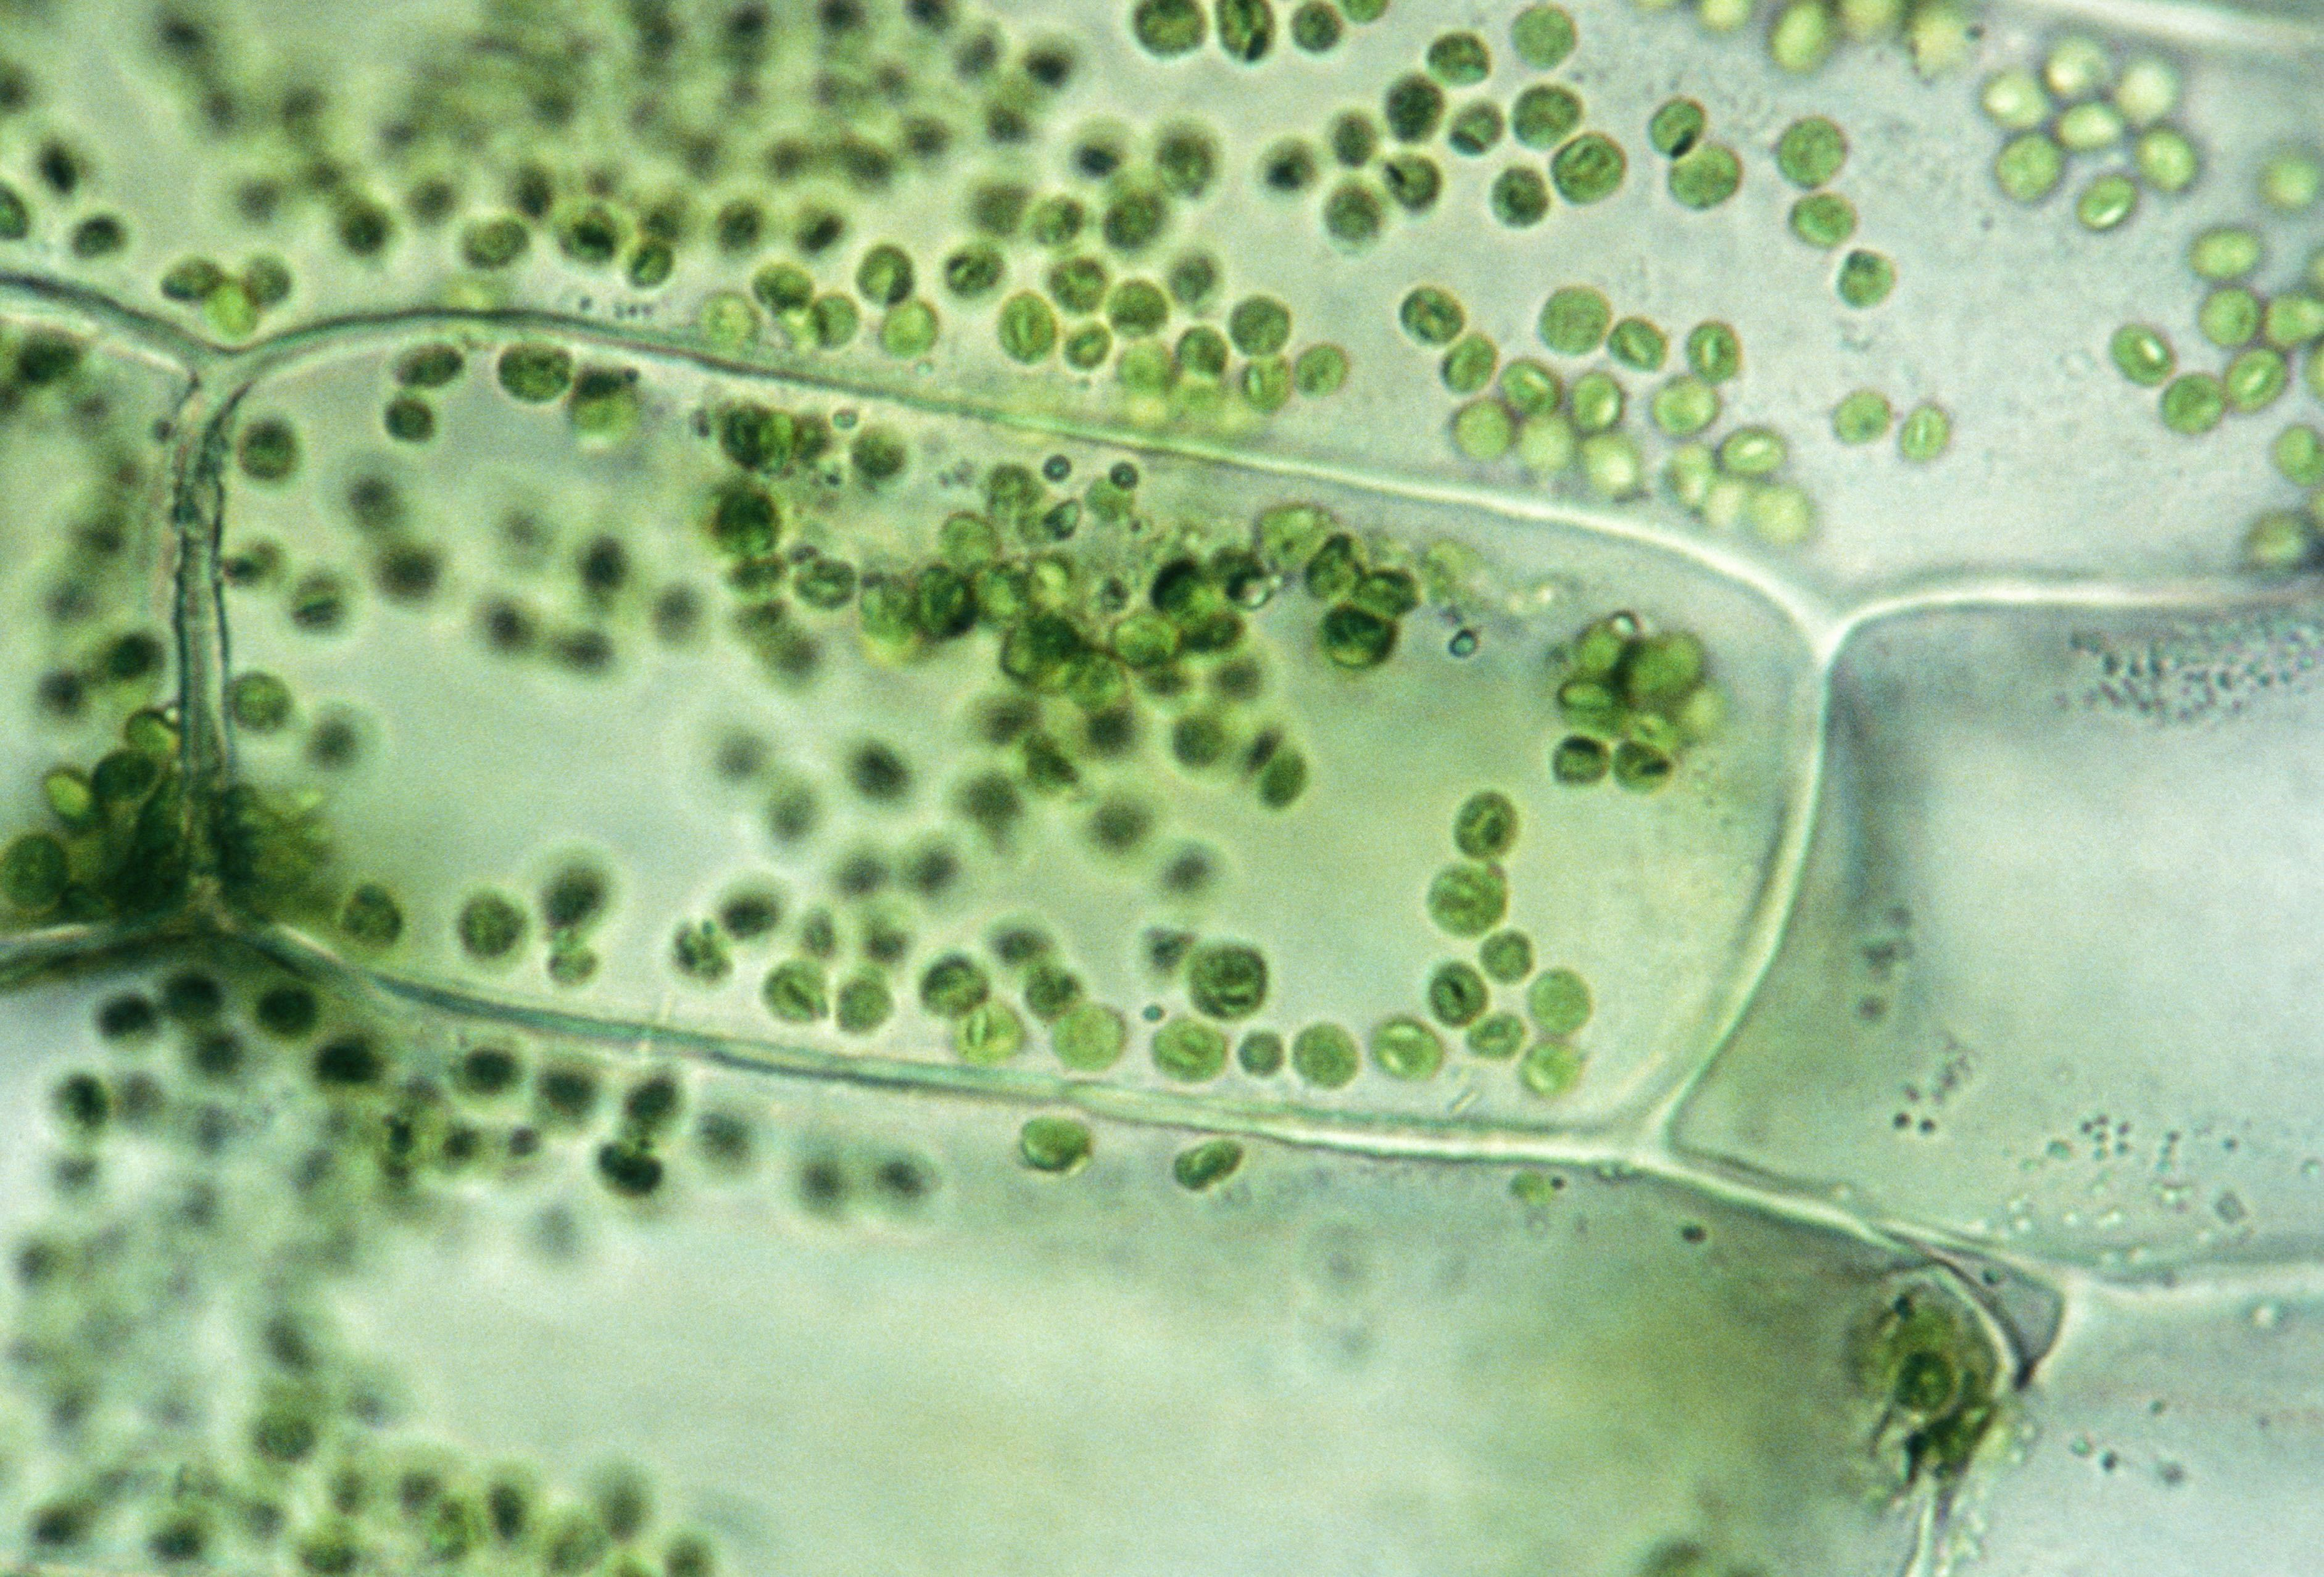 elodea leaf cell diagram girl power tattoo quotes learn about plant types and organelles